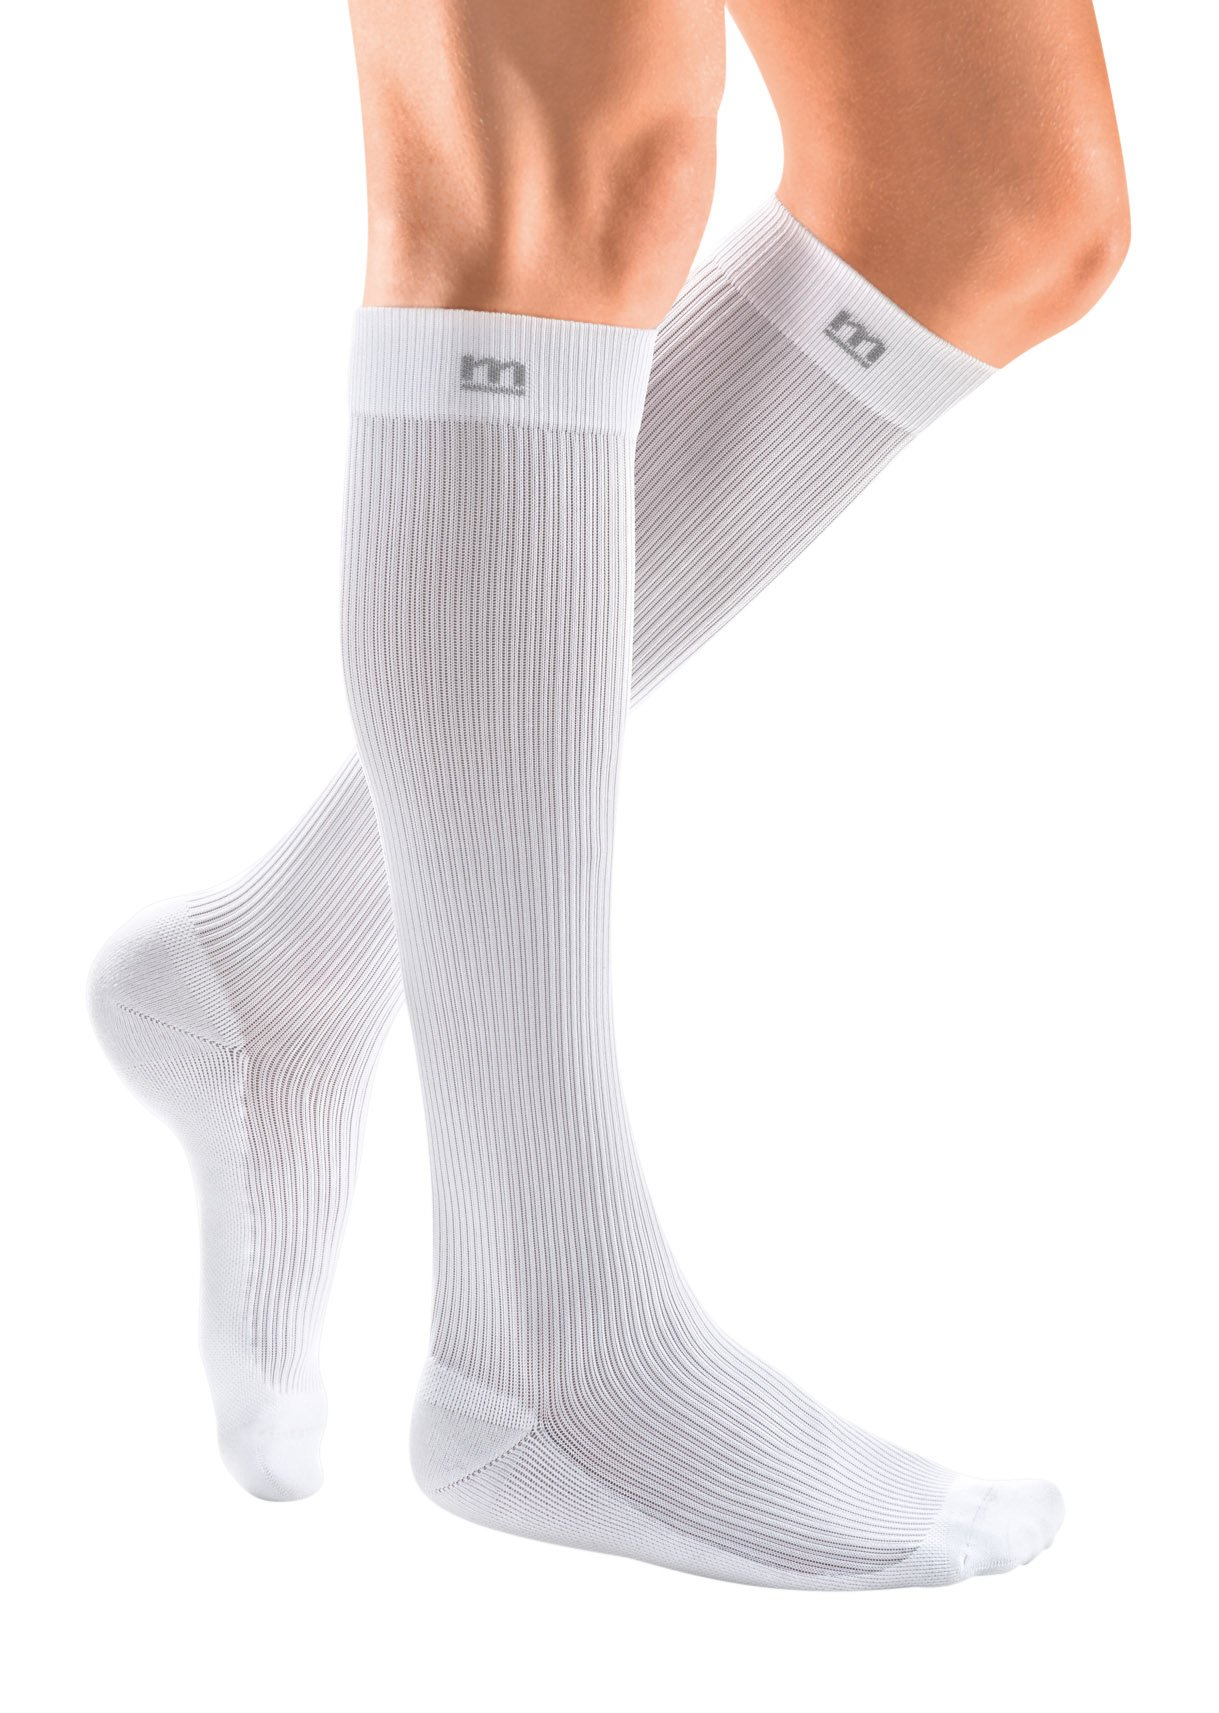 mediven Active, 20-30 mmHg, Calf High Compression Stockings, Closed Toe